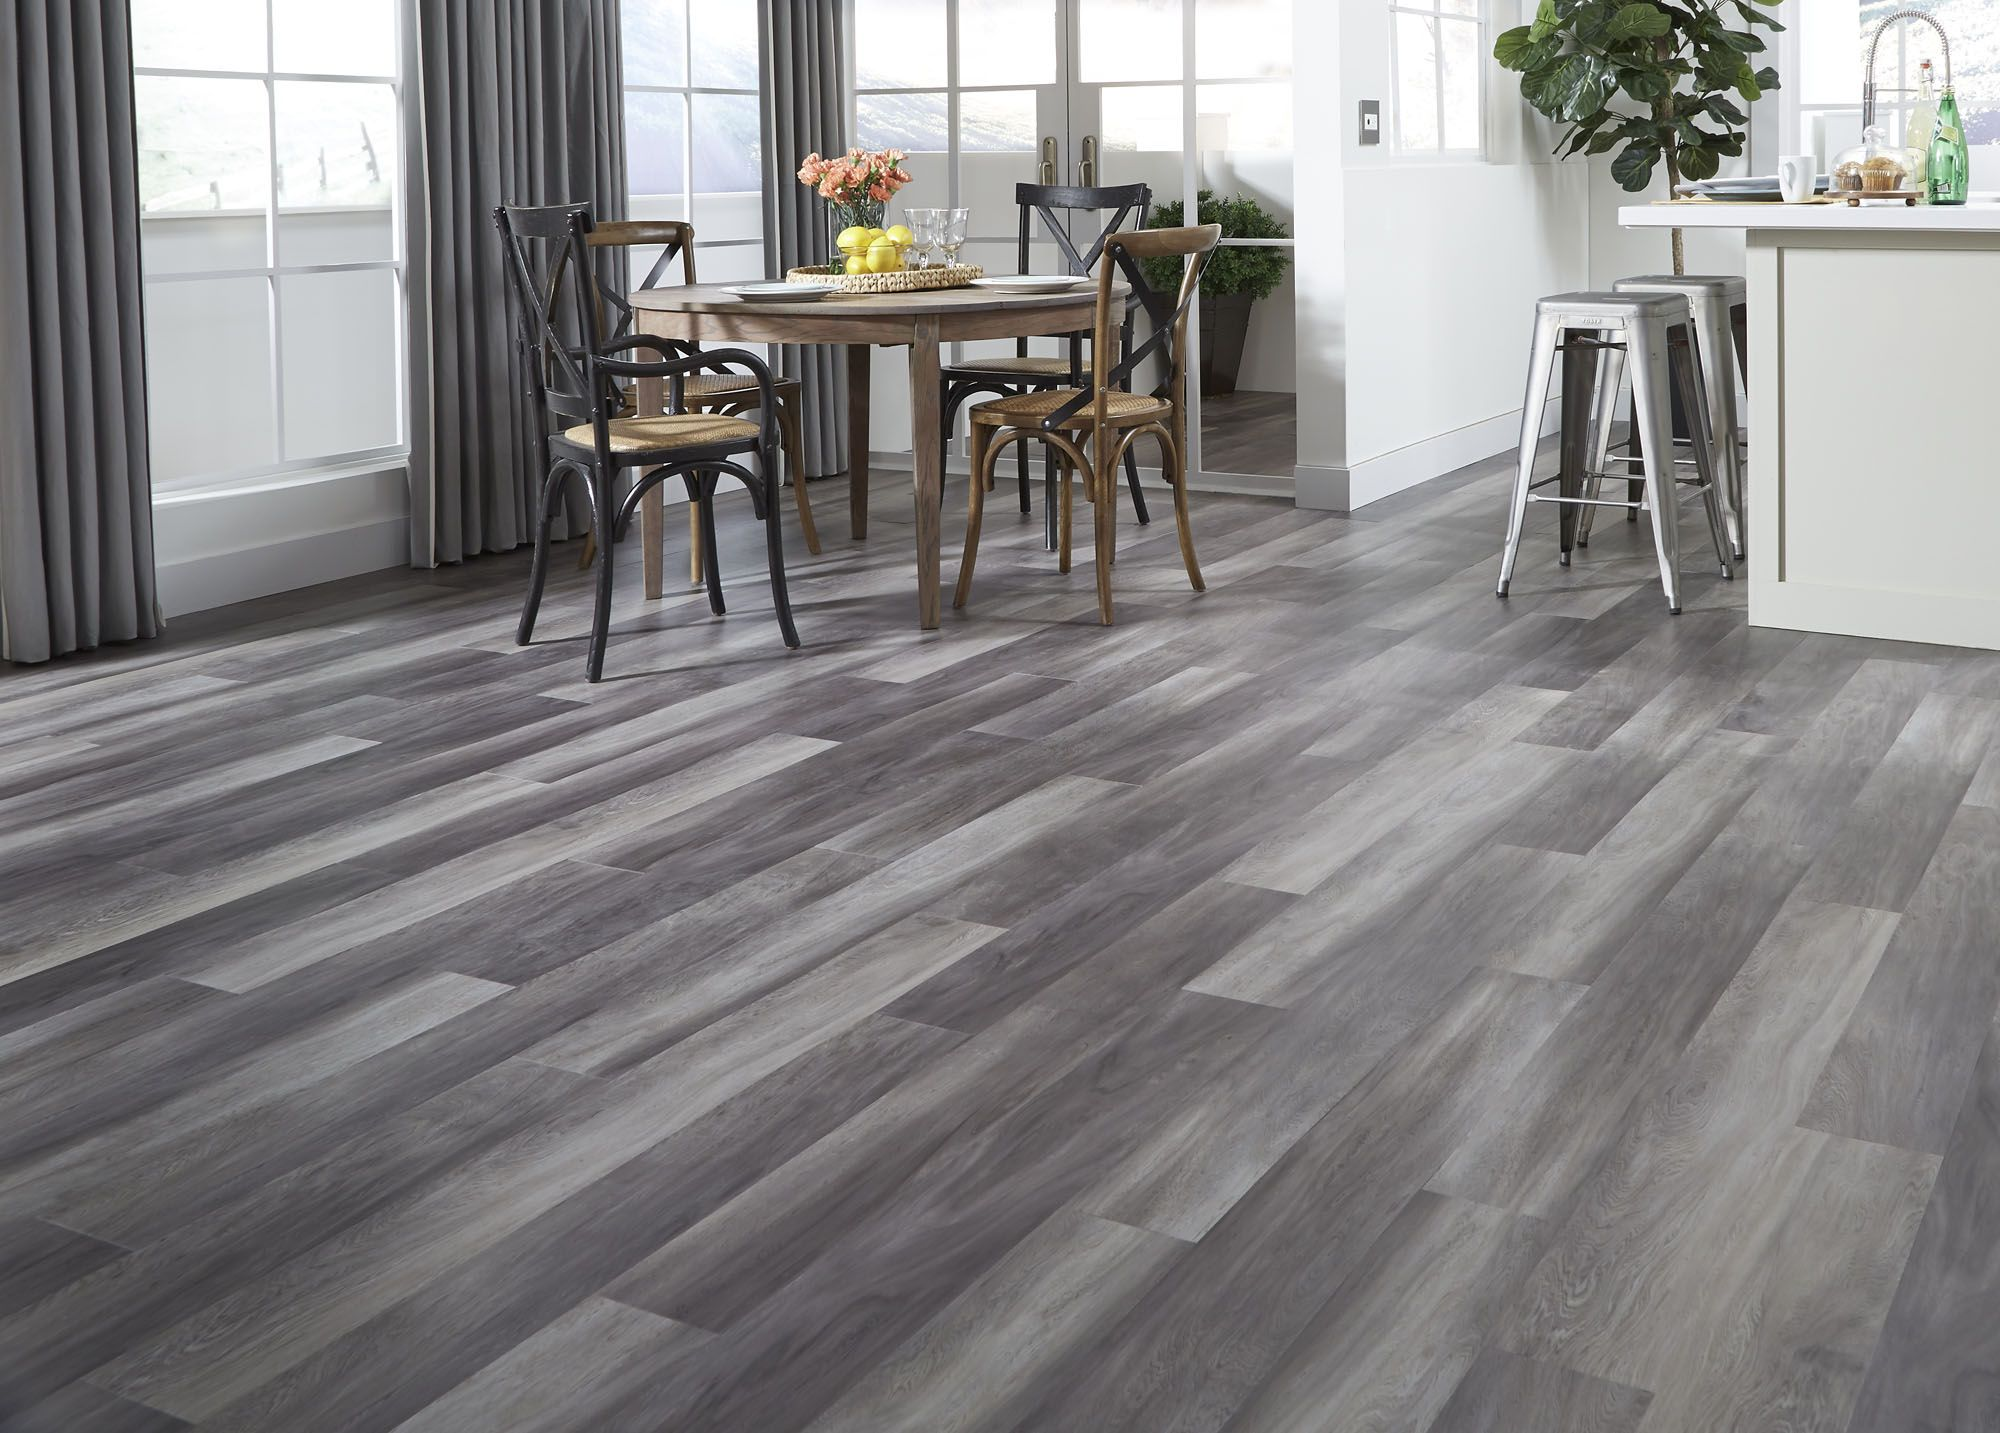 Stormy gray oak a waterproof luxury vinyl plank for New home flooring